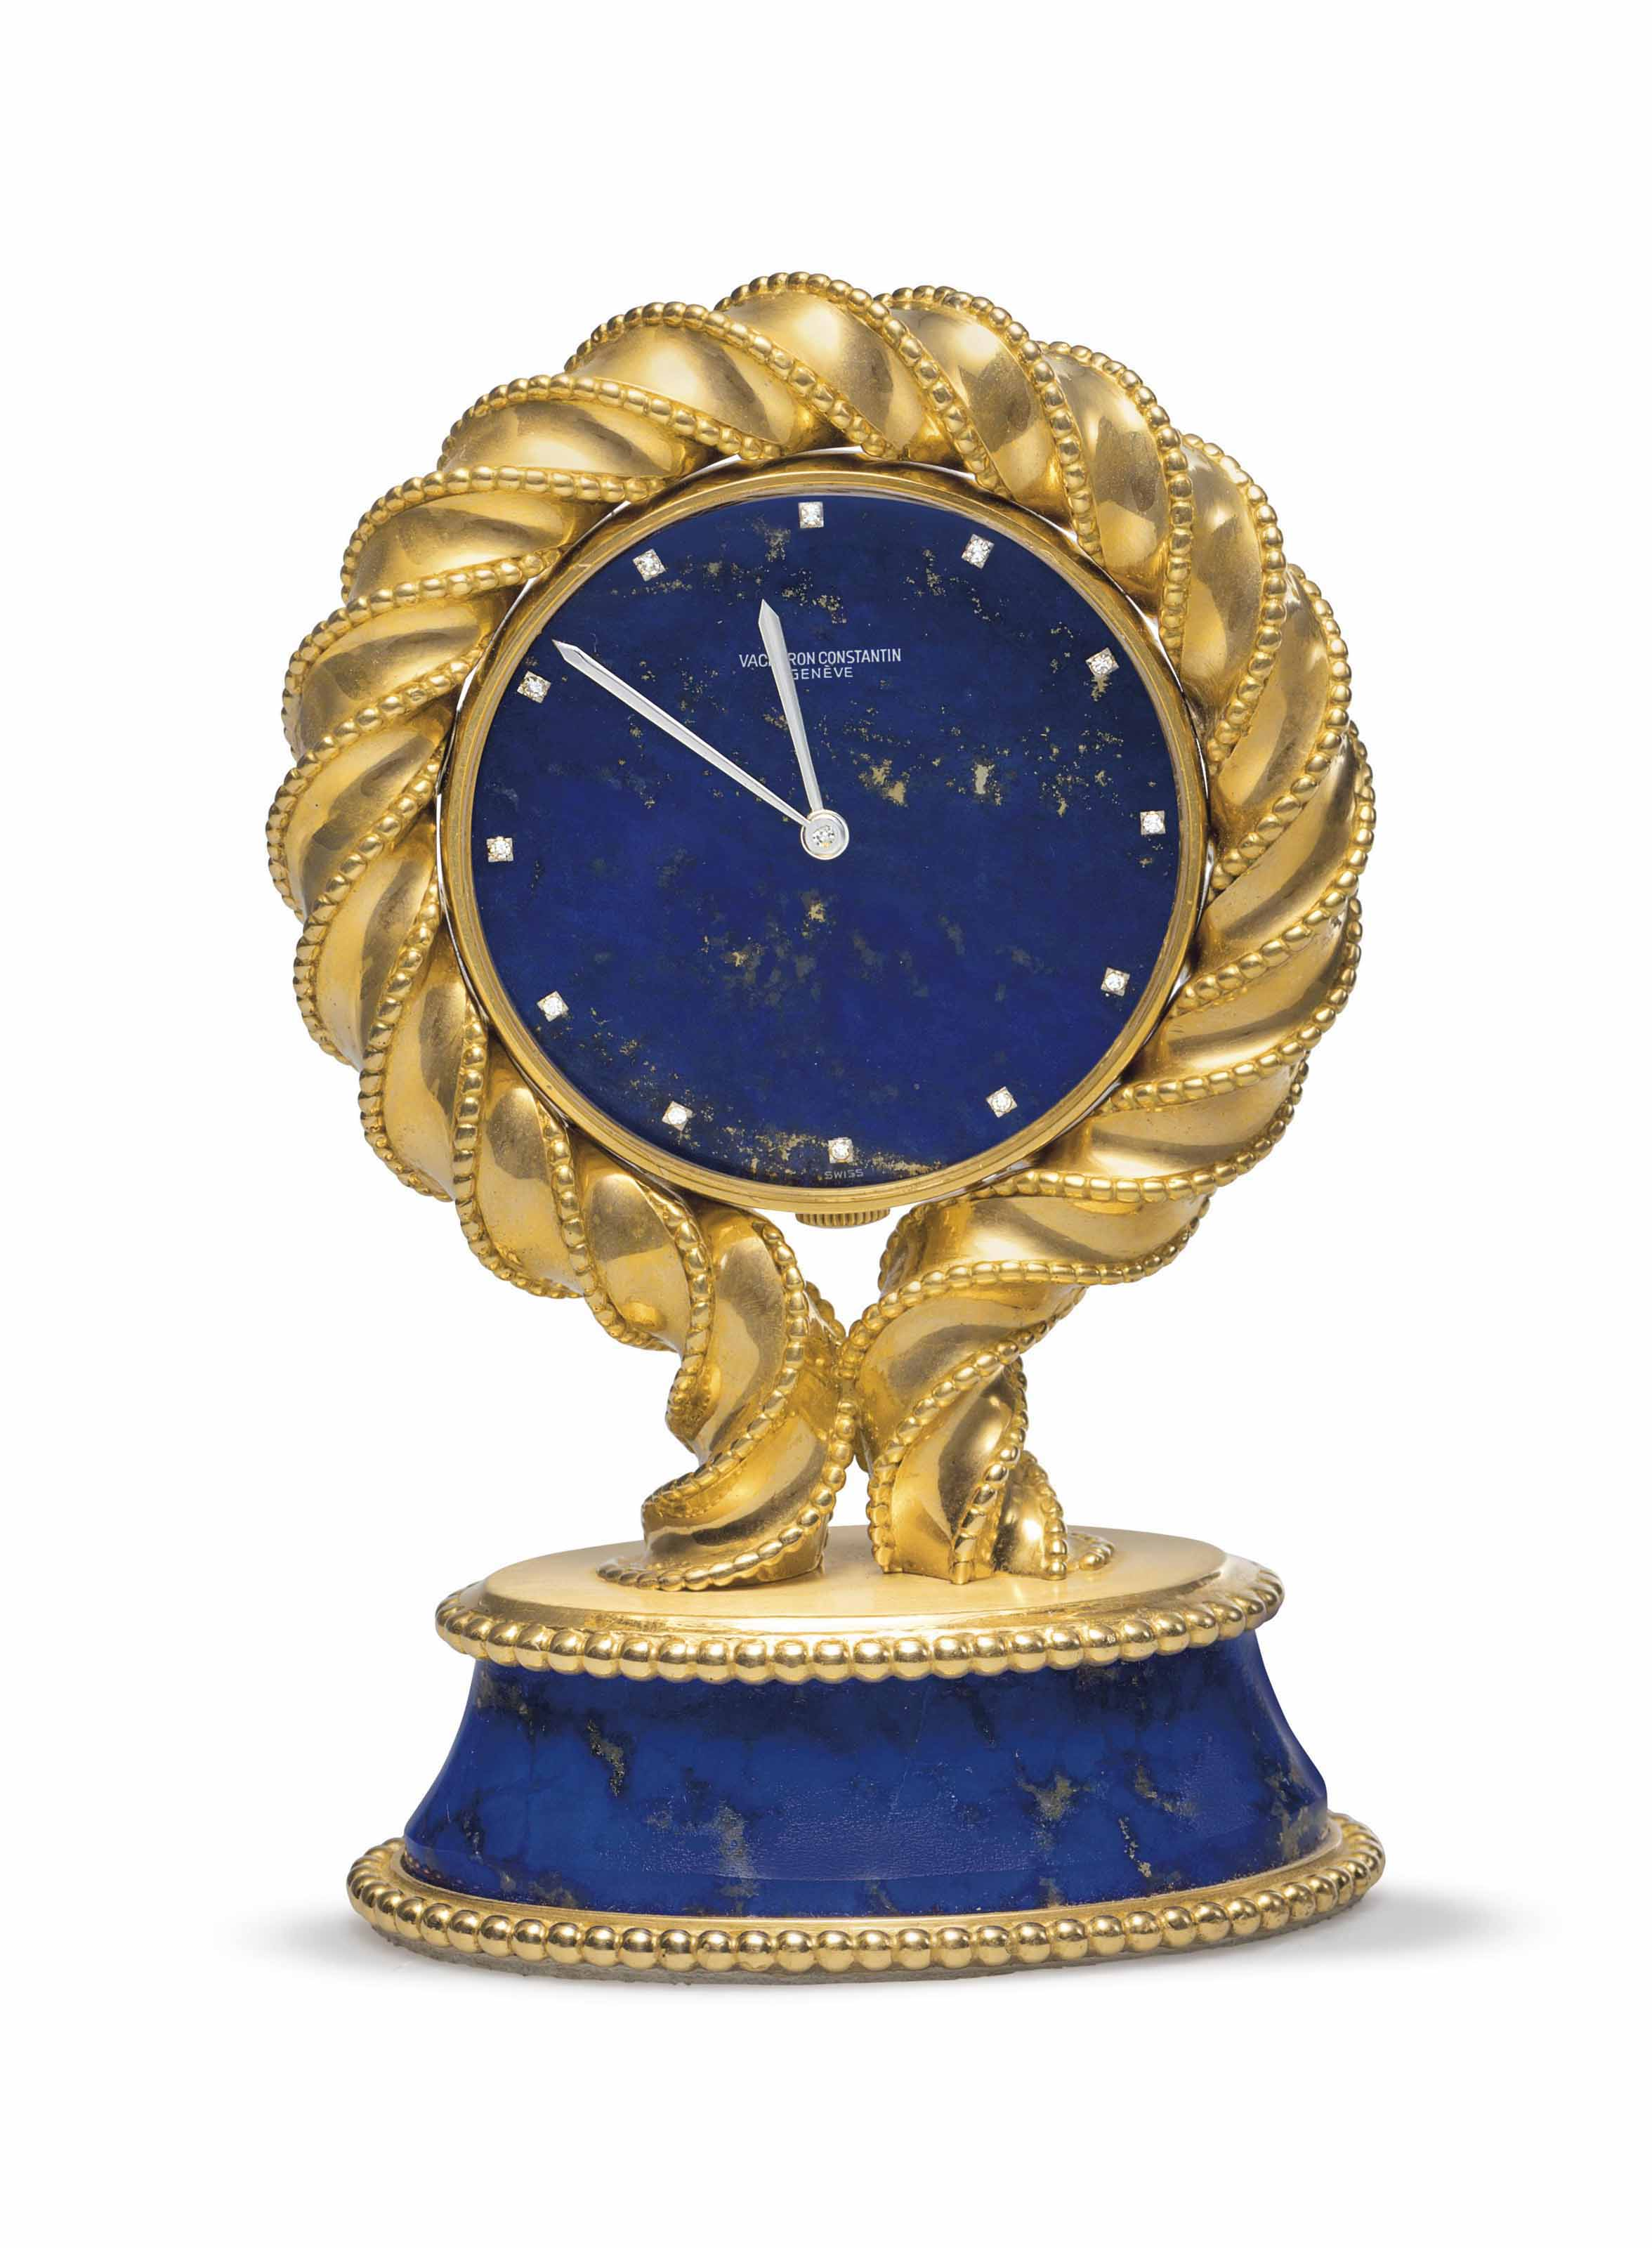 Vacheron Constantin. A Fine and Unusual 18k Gold and Lapis Lazuli Desk Clock with Diamond-set Numerals